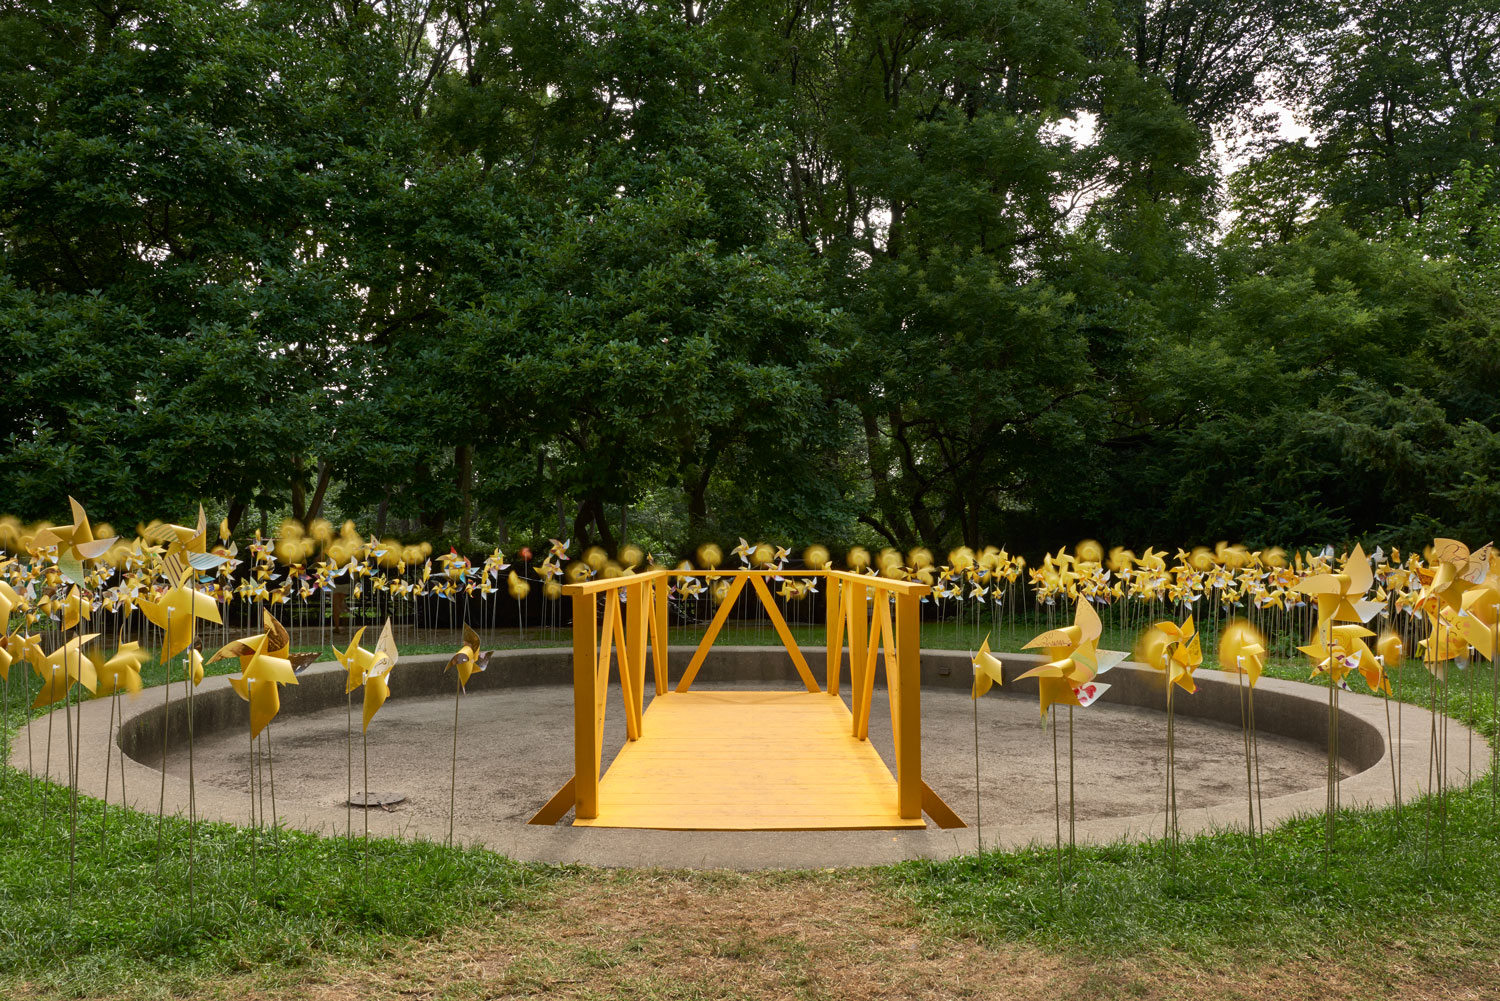 Walkway at the Connective Project in Prospect Park, Brooklyn. Image © harlan erskine